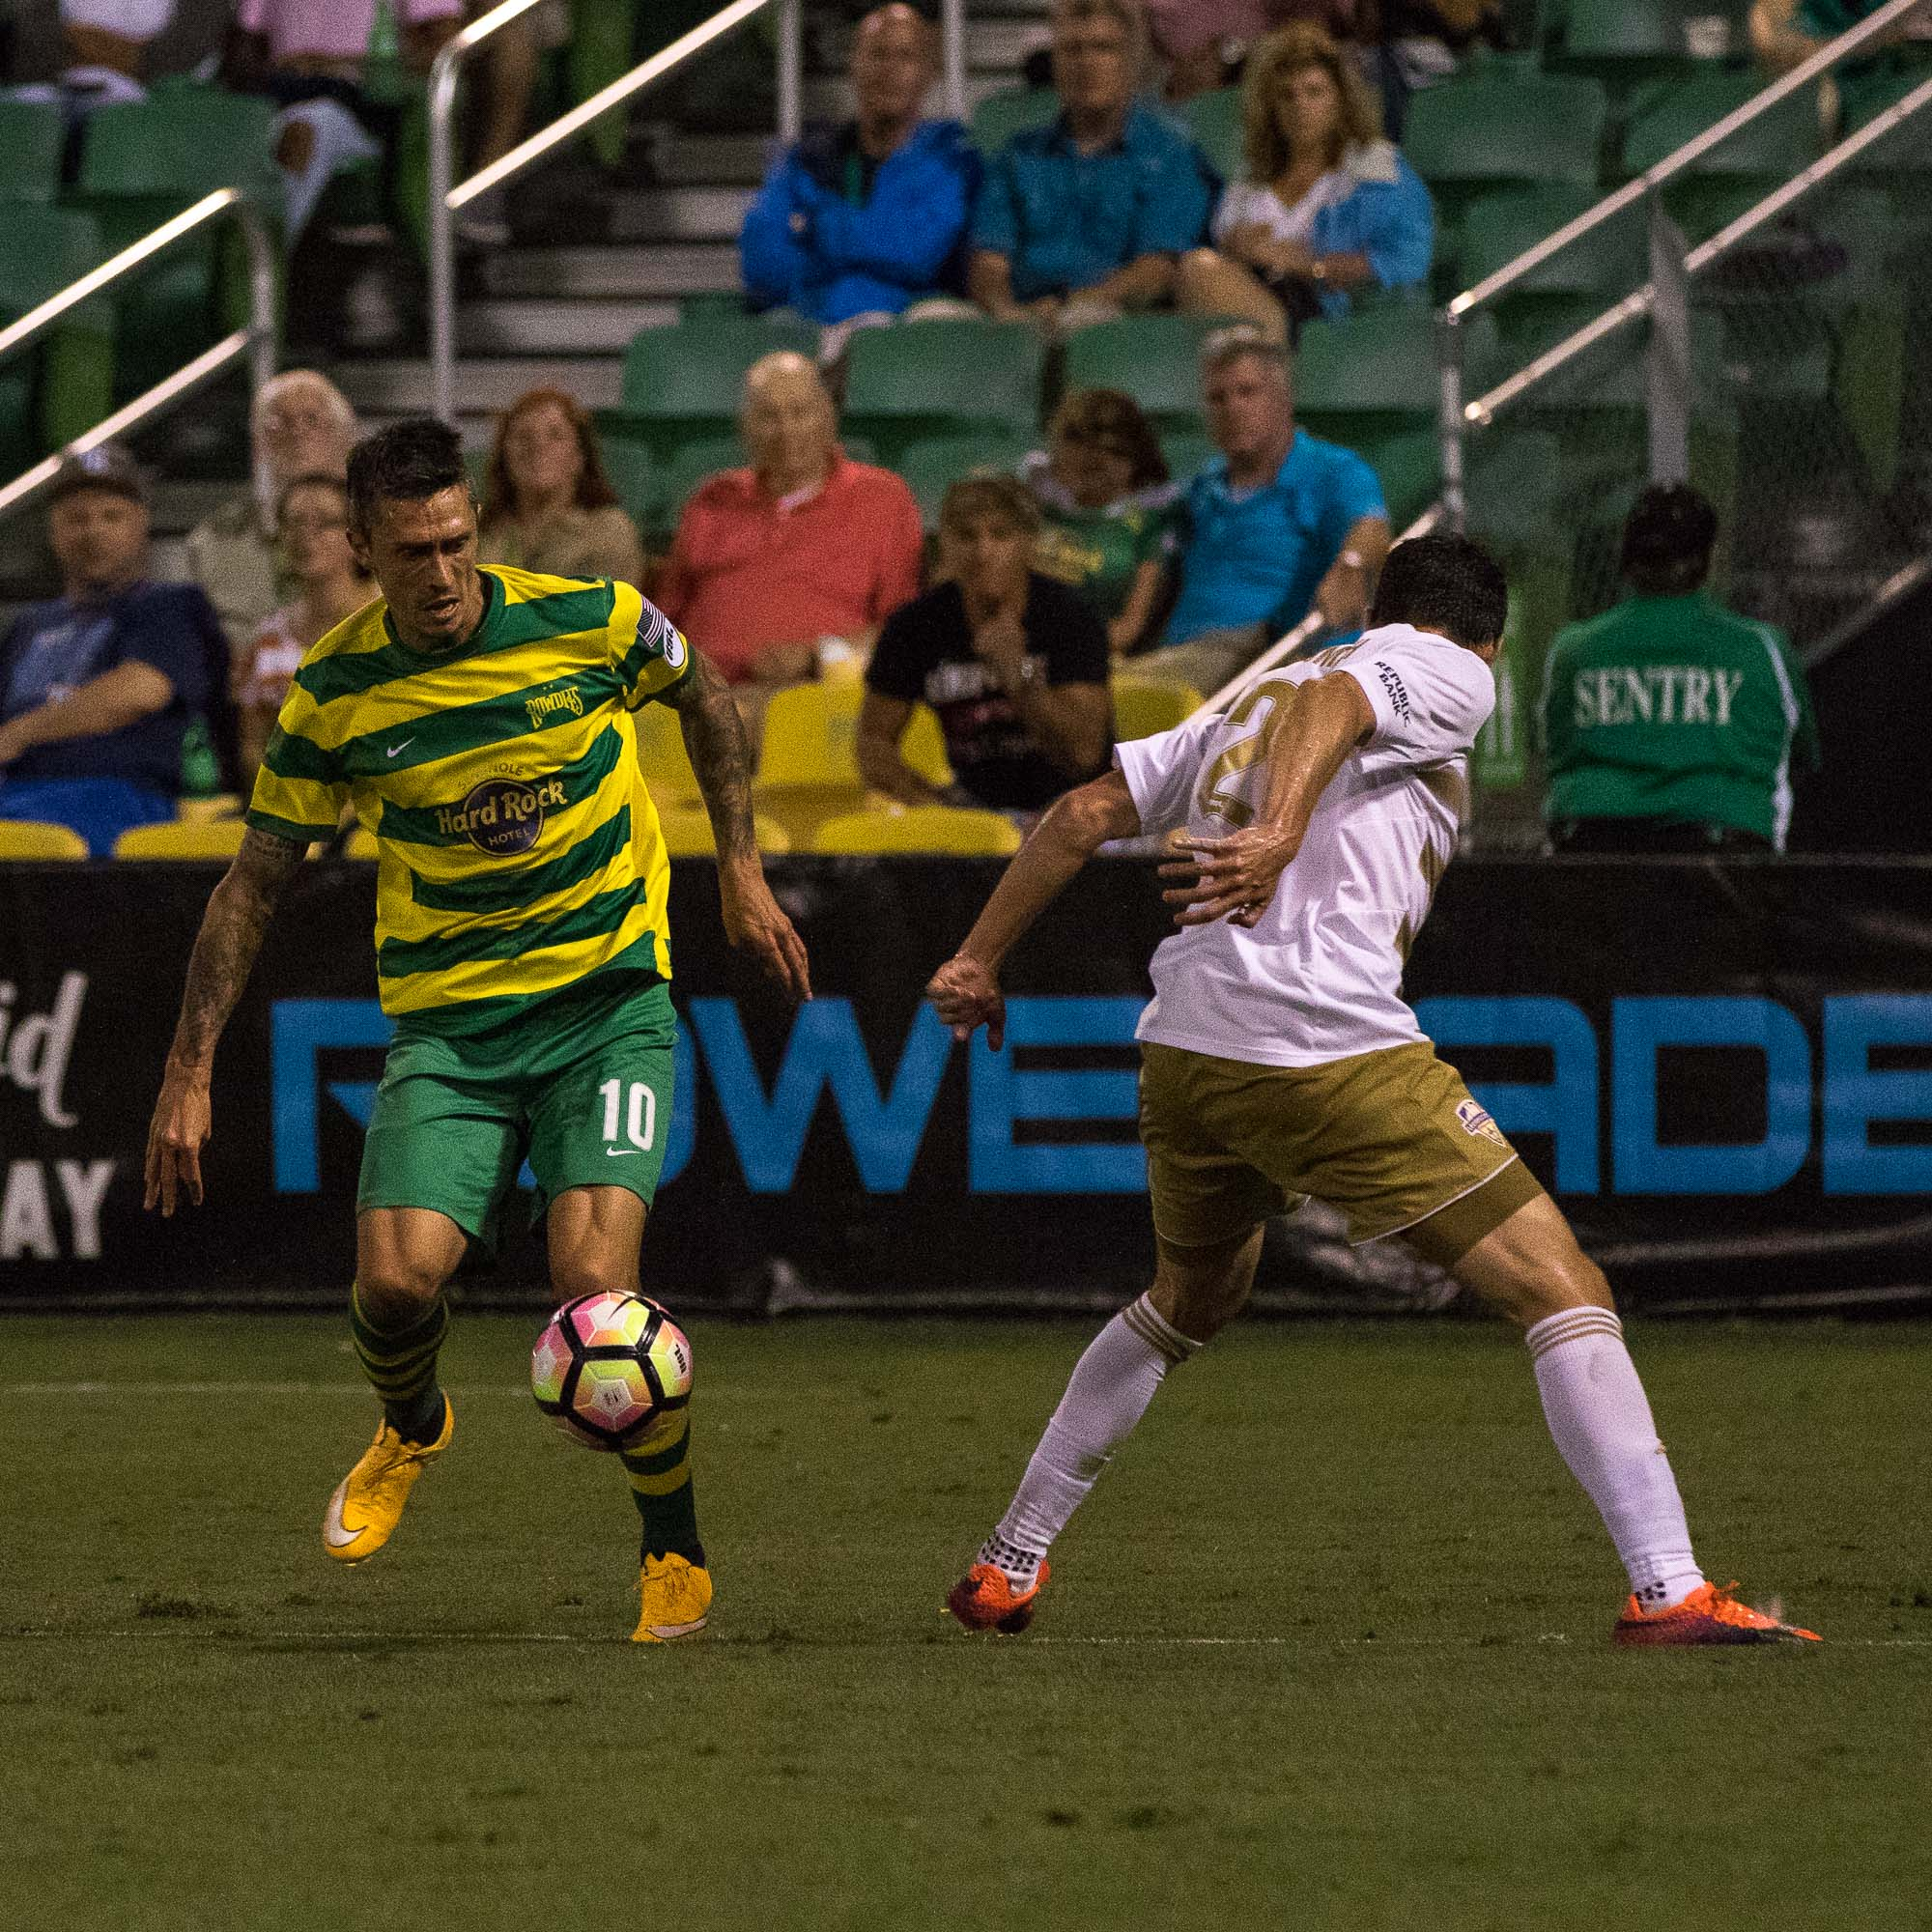 Georgi Hristov sets up the shot to score and give the Rowdies a 1-0 lead./STEVEN MUNCIE